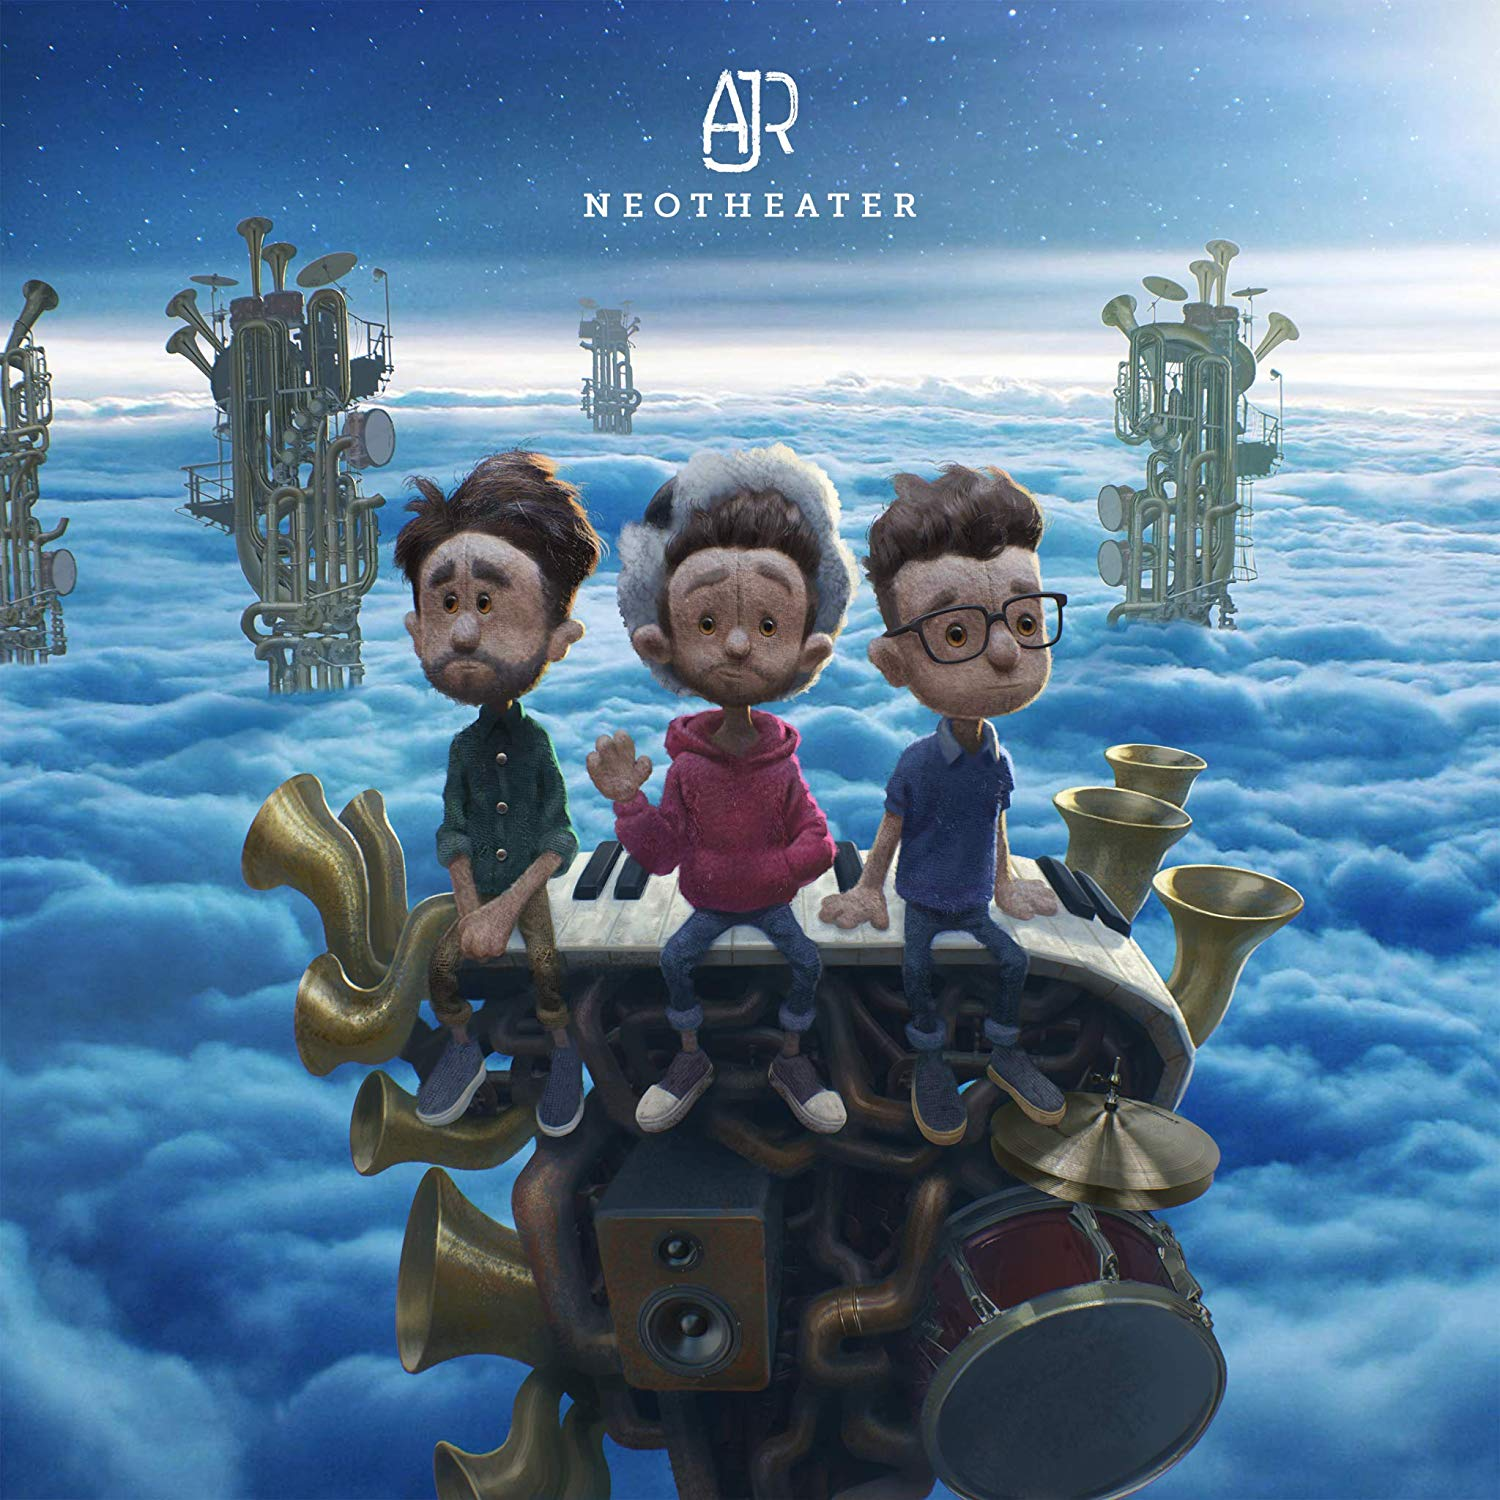 AJR - Neotheater [LP]